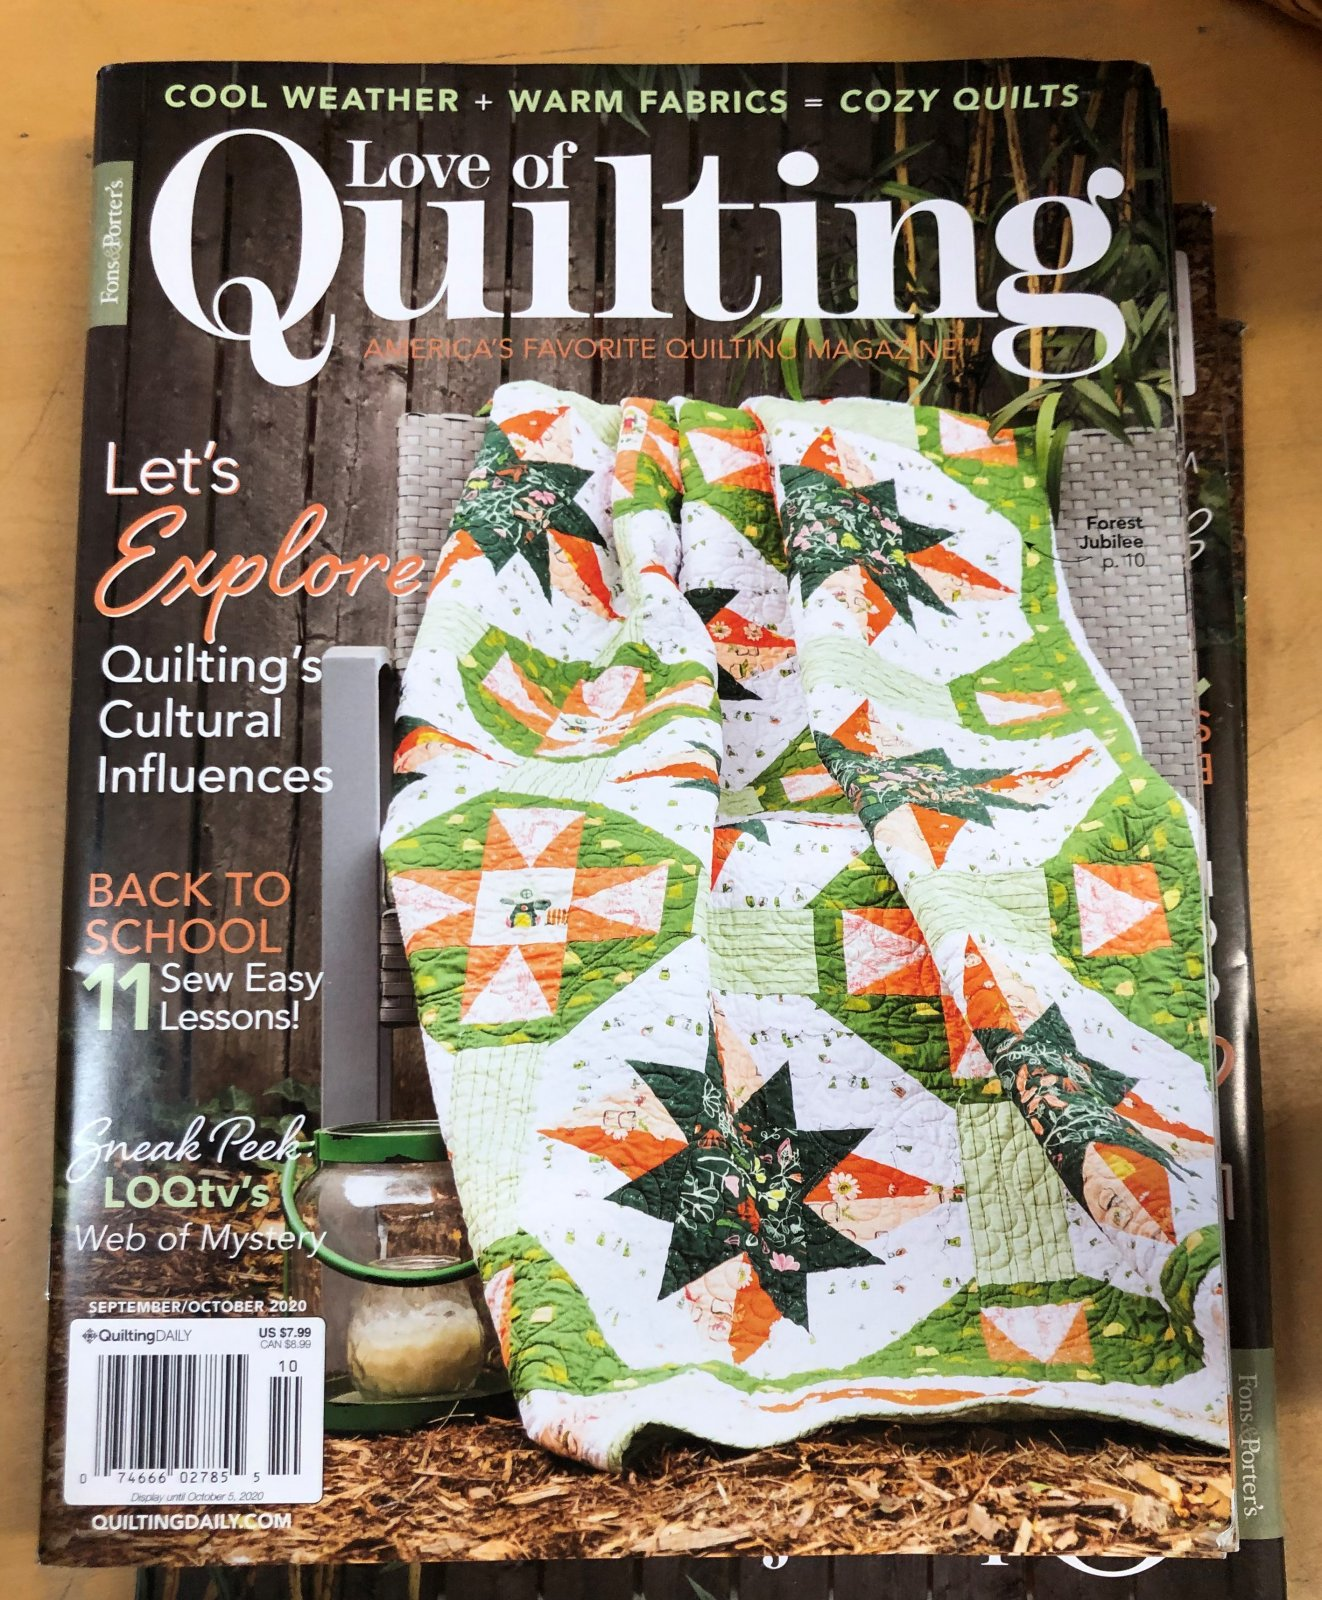 Love of Quilting Magazine by Quilting Daily - September/October 2020 Issue